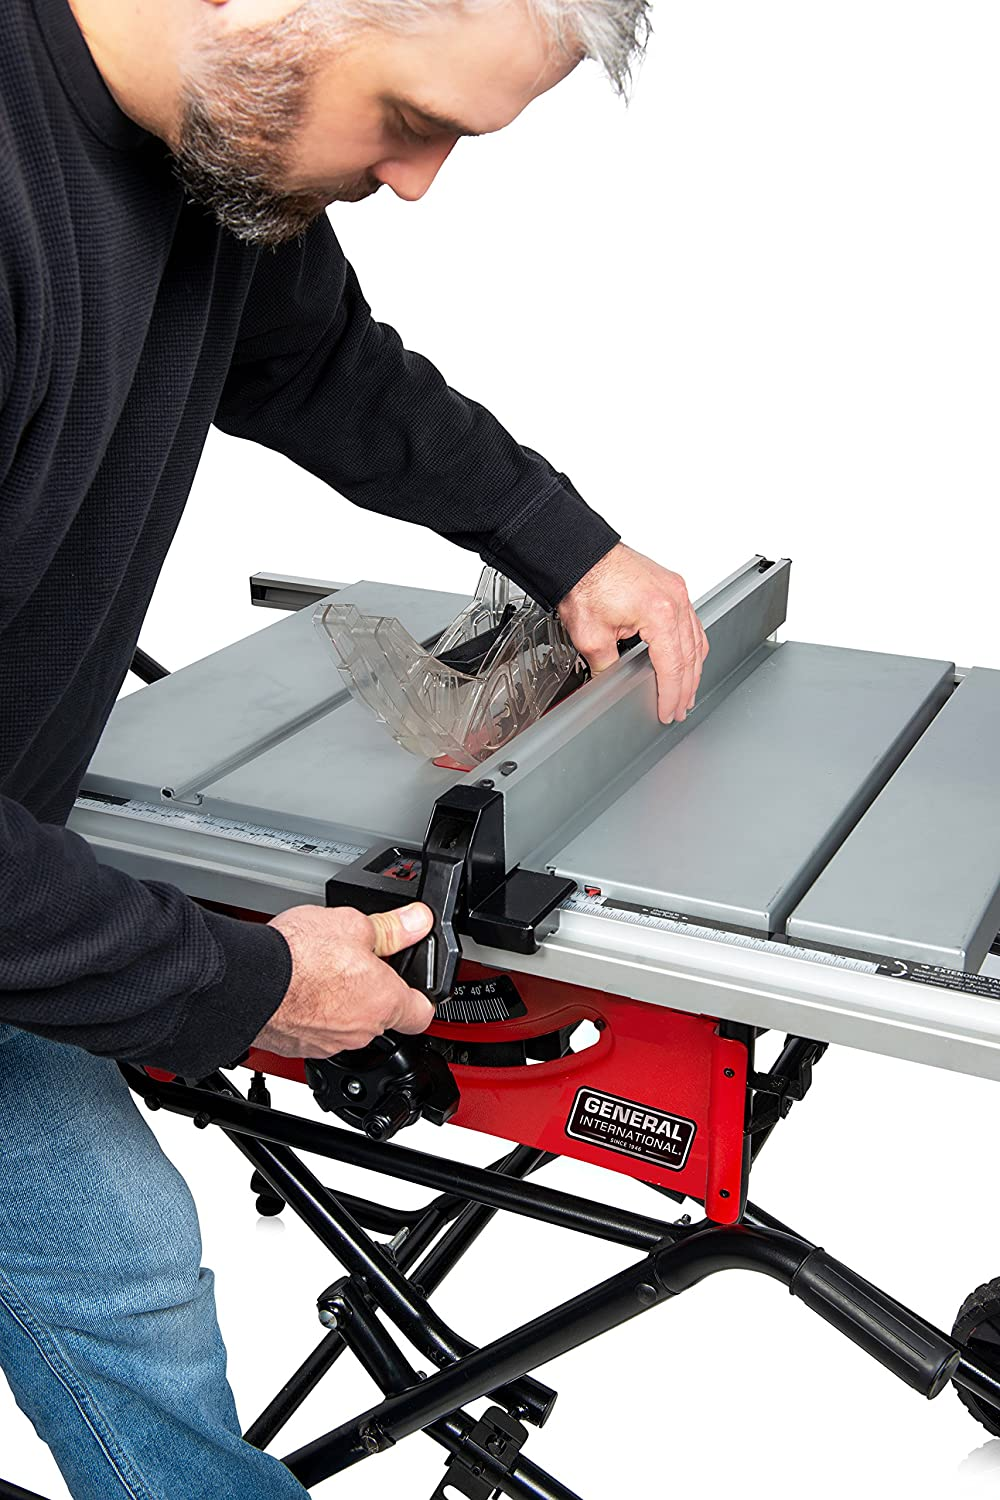 General International TS4004 Table Saws product image 6